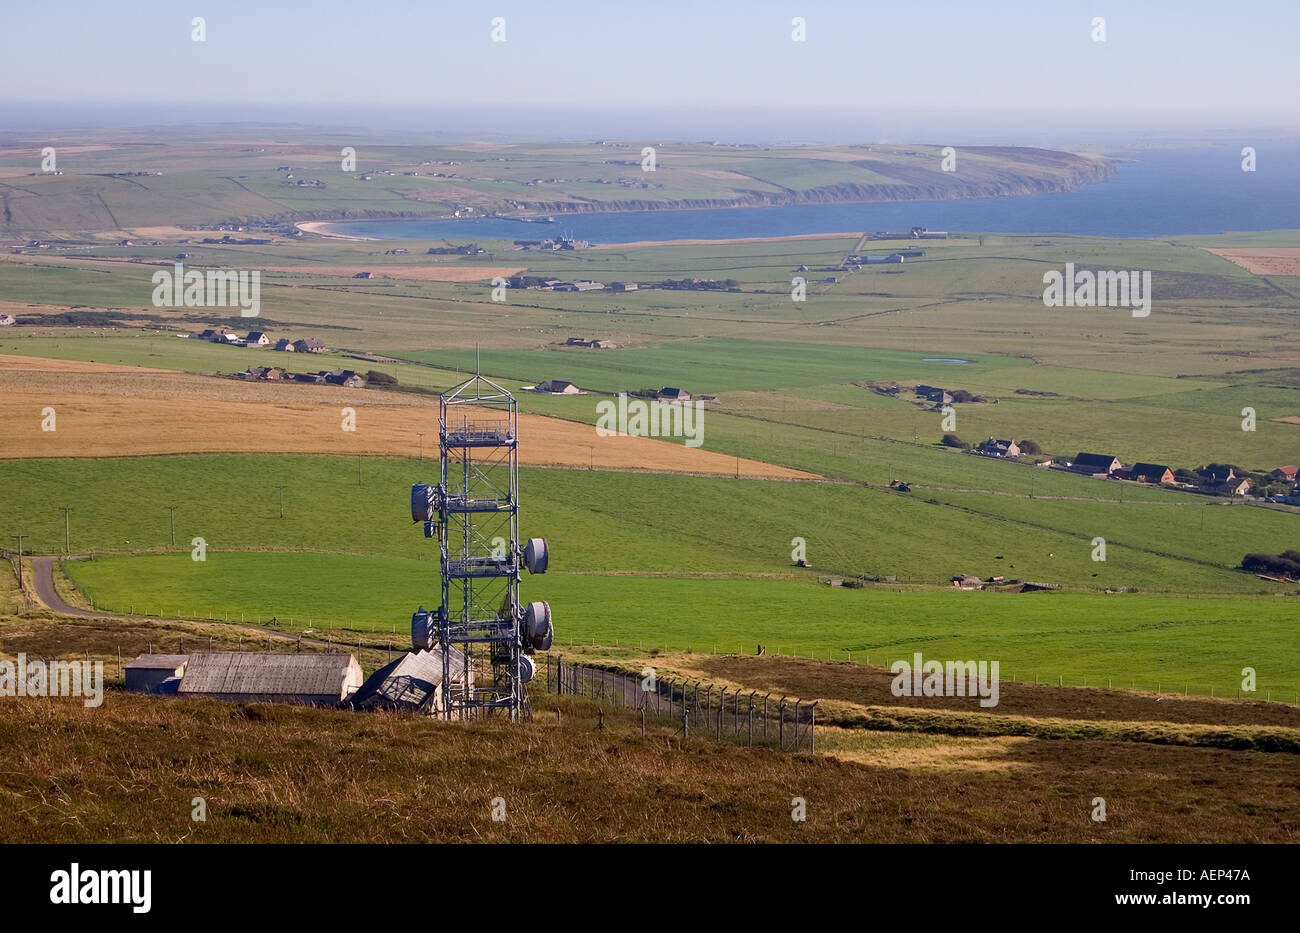 dh Wideforth Hill ST OLA ORKNEY Telecommunications Microwave relay link station mast tower Stock Photo